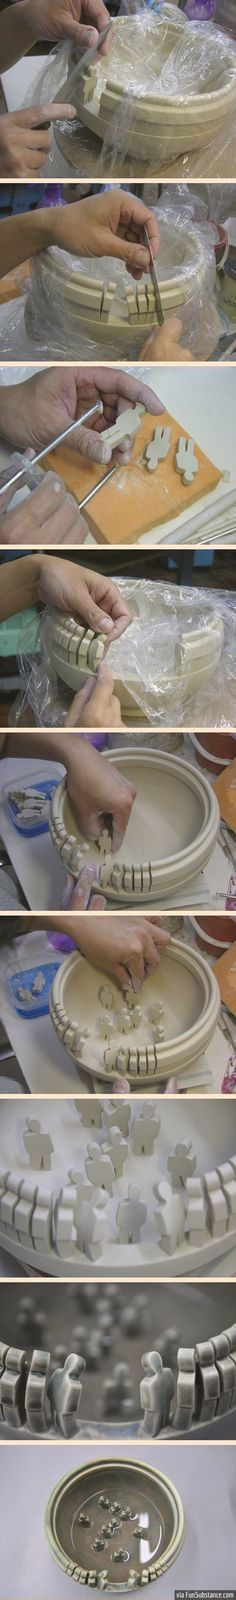 """I love this bowl - I would call it """"Drop in the puddle of humanity!"""" I want to make one."""